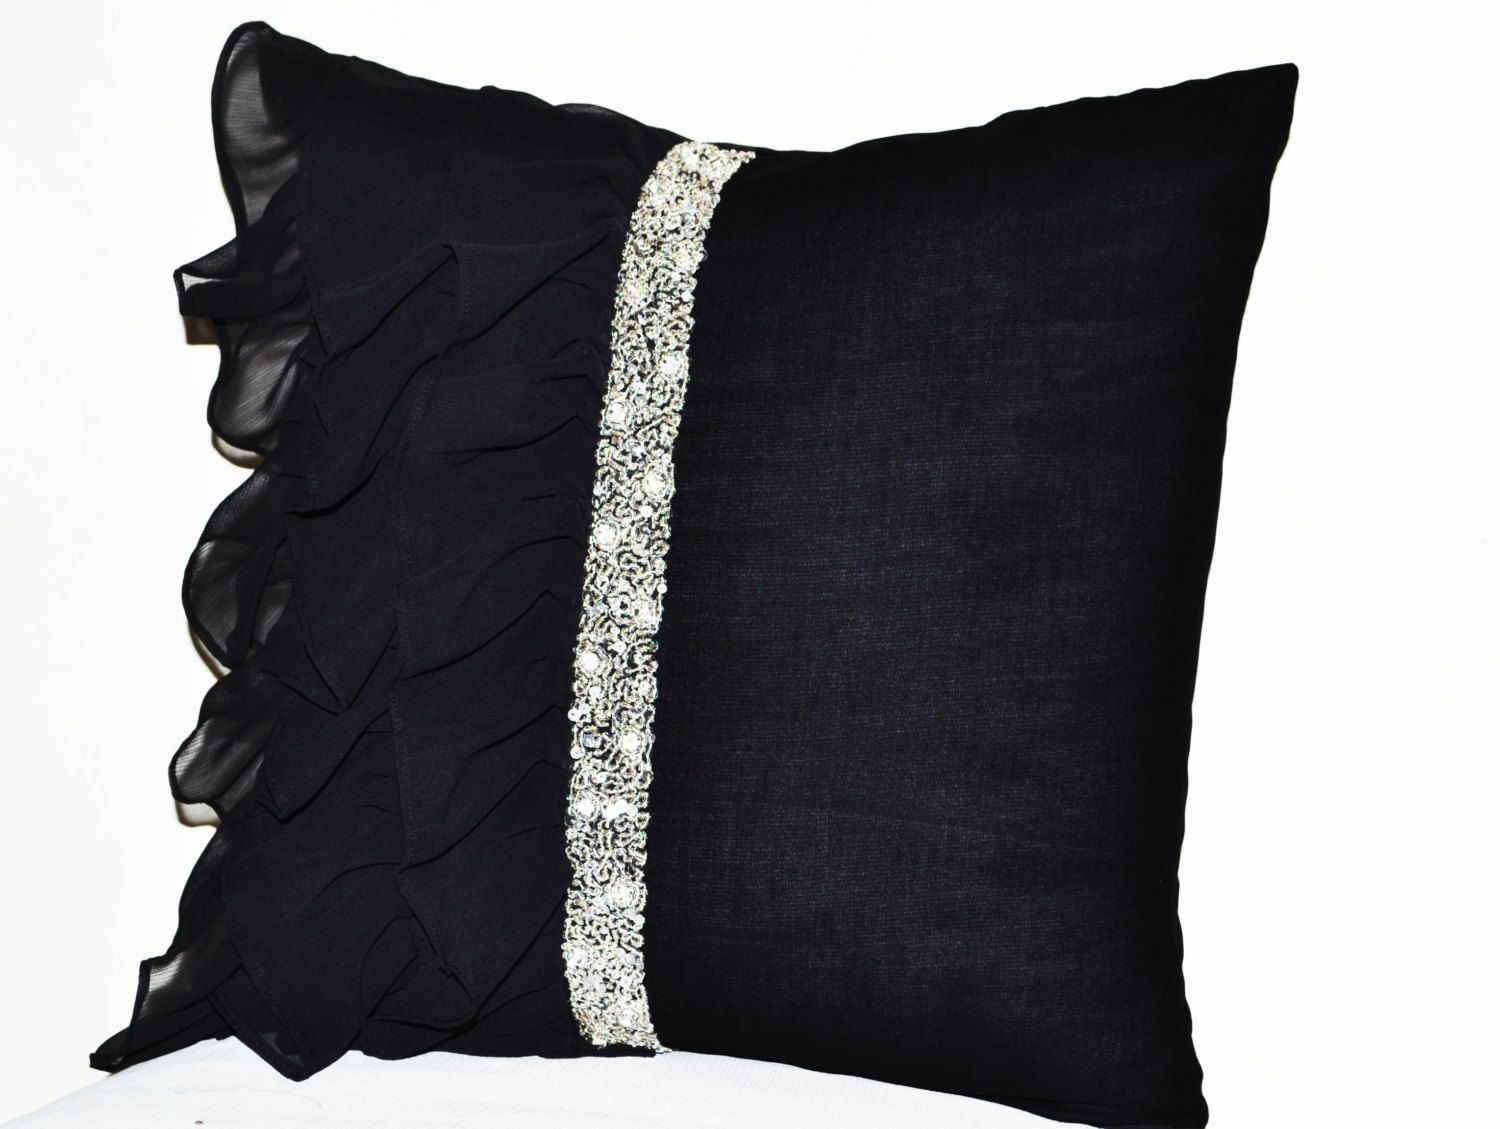 Decorative Pillows With Ruffles : Black ruffled sequin throw pillow -18x18 Decorative Pillow -Black cushion cover -Gift Pillow ...